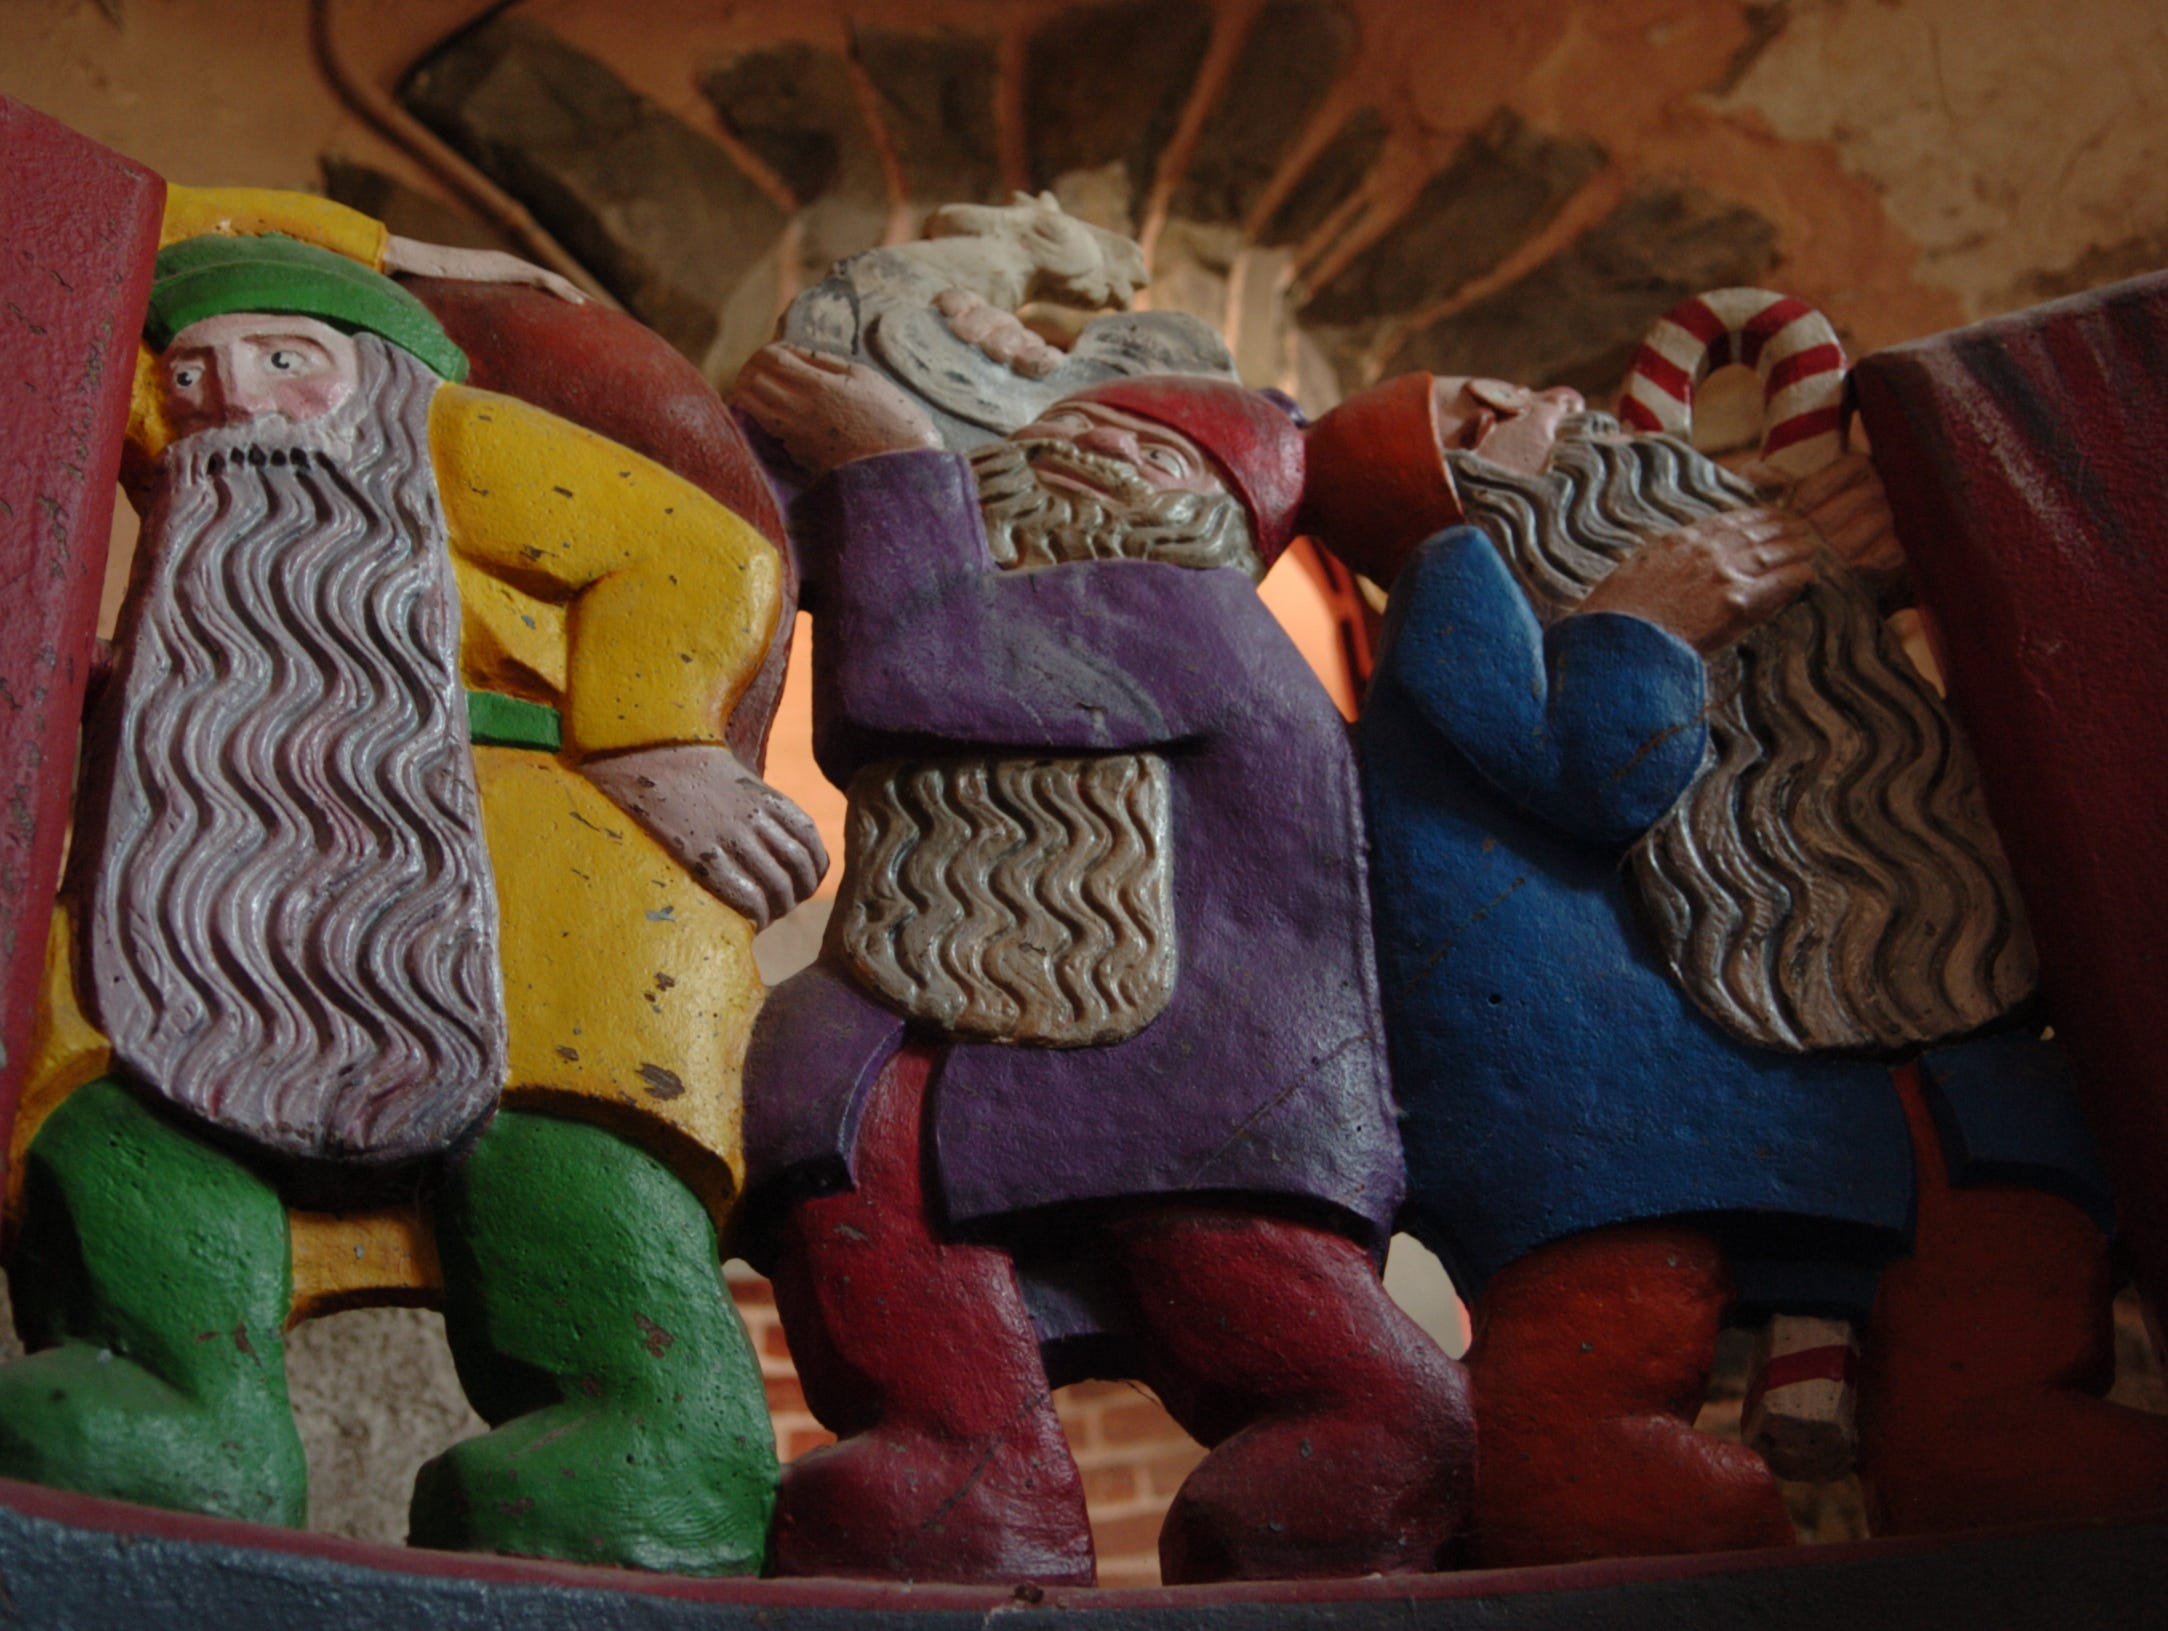 2007: Detailed carvings inside the historic Gingerbread Castle in Hamburg.